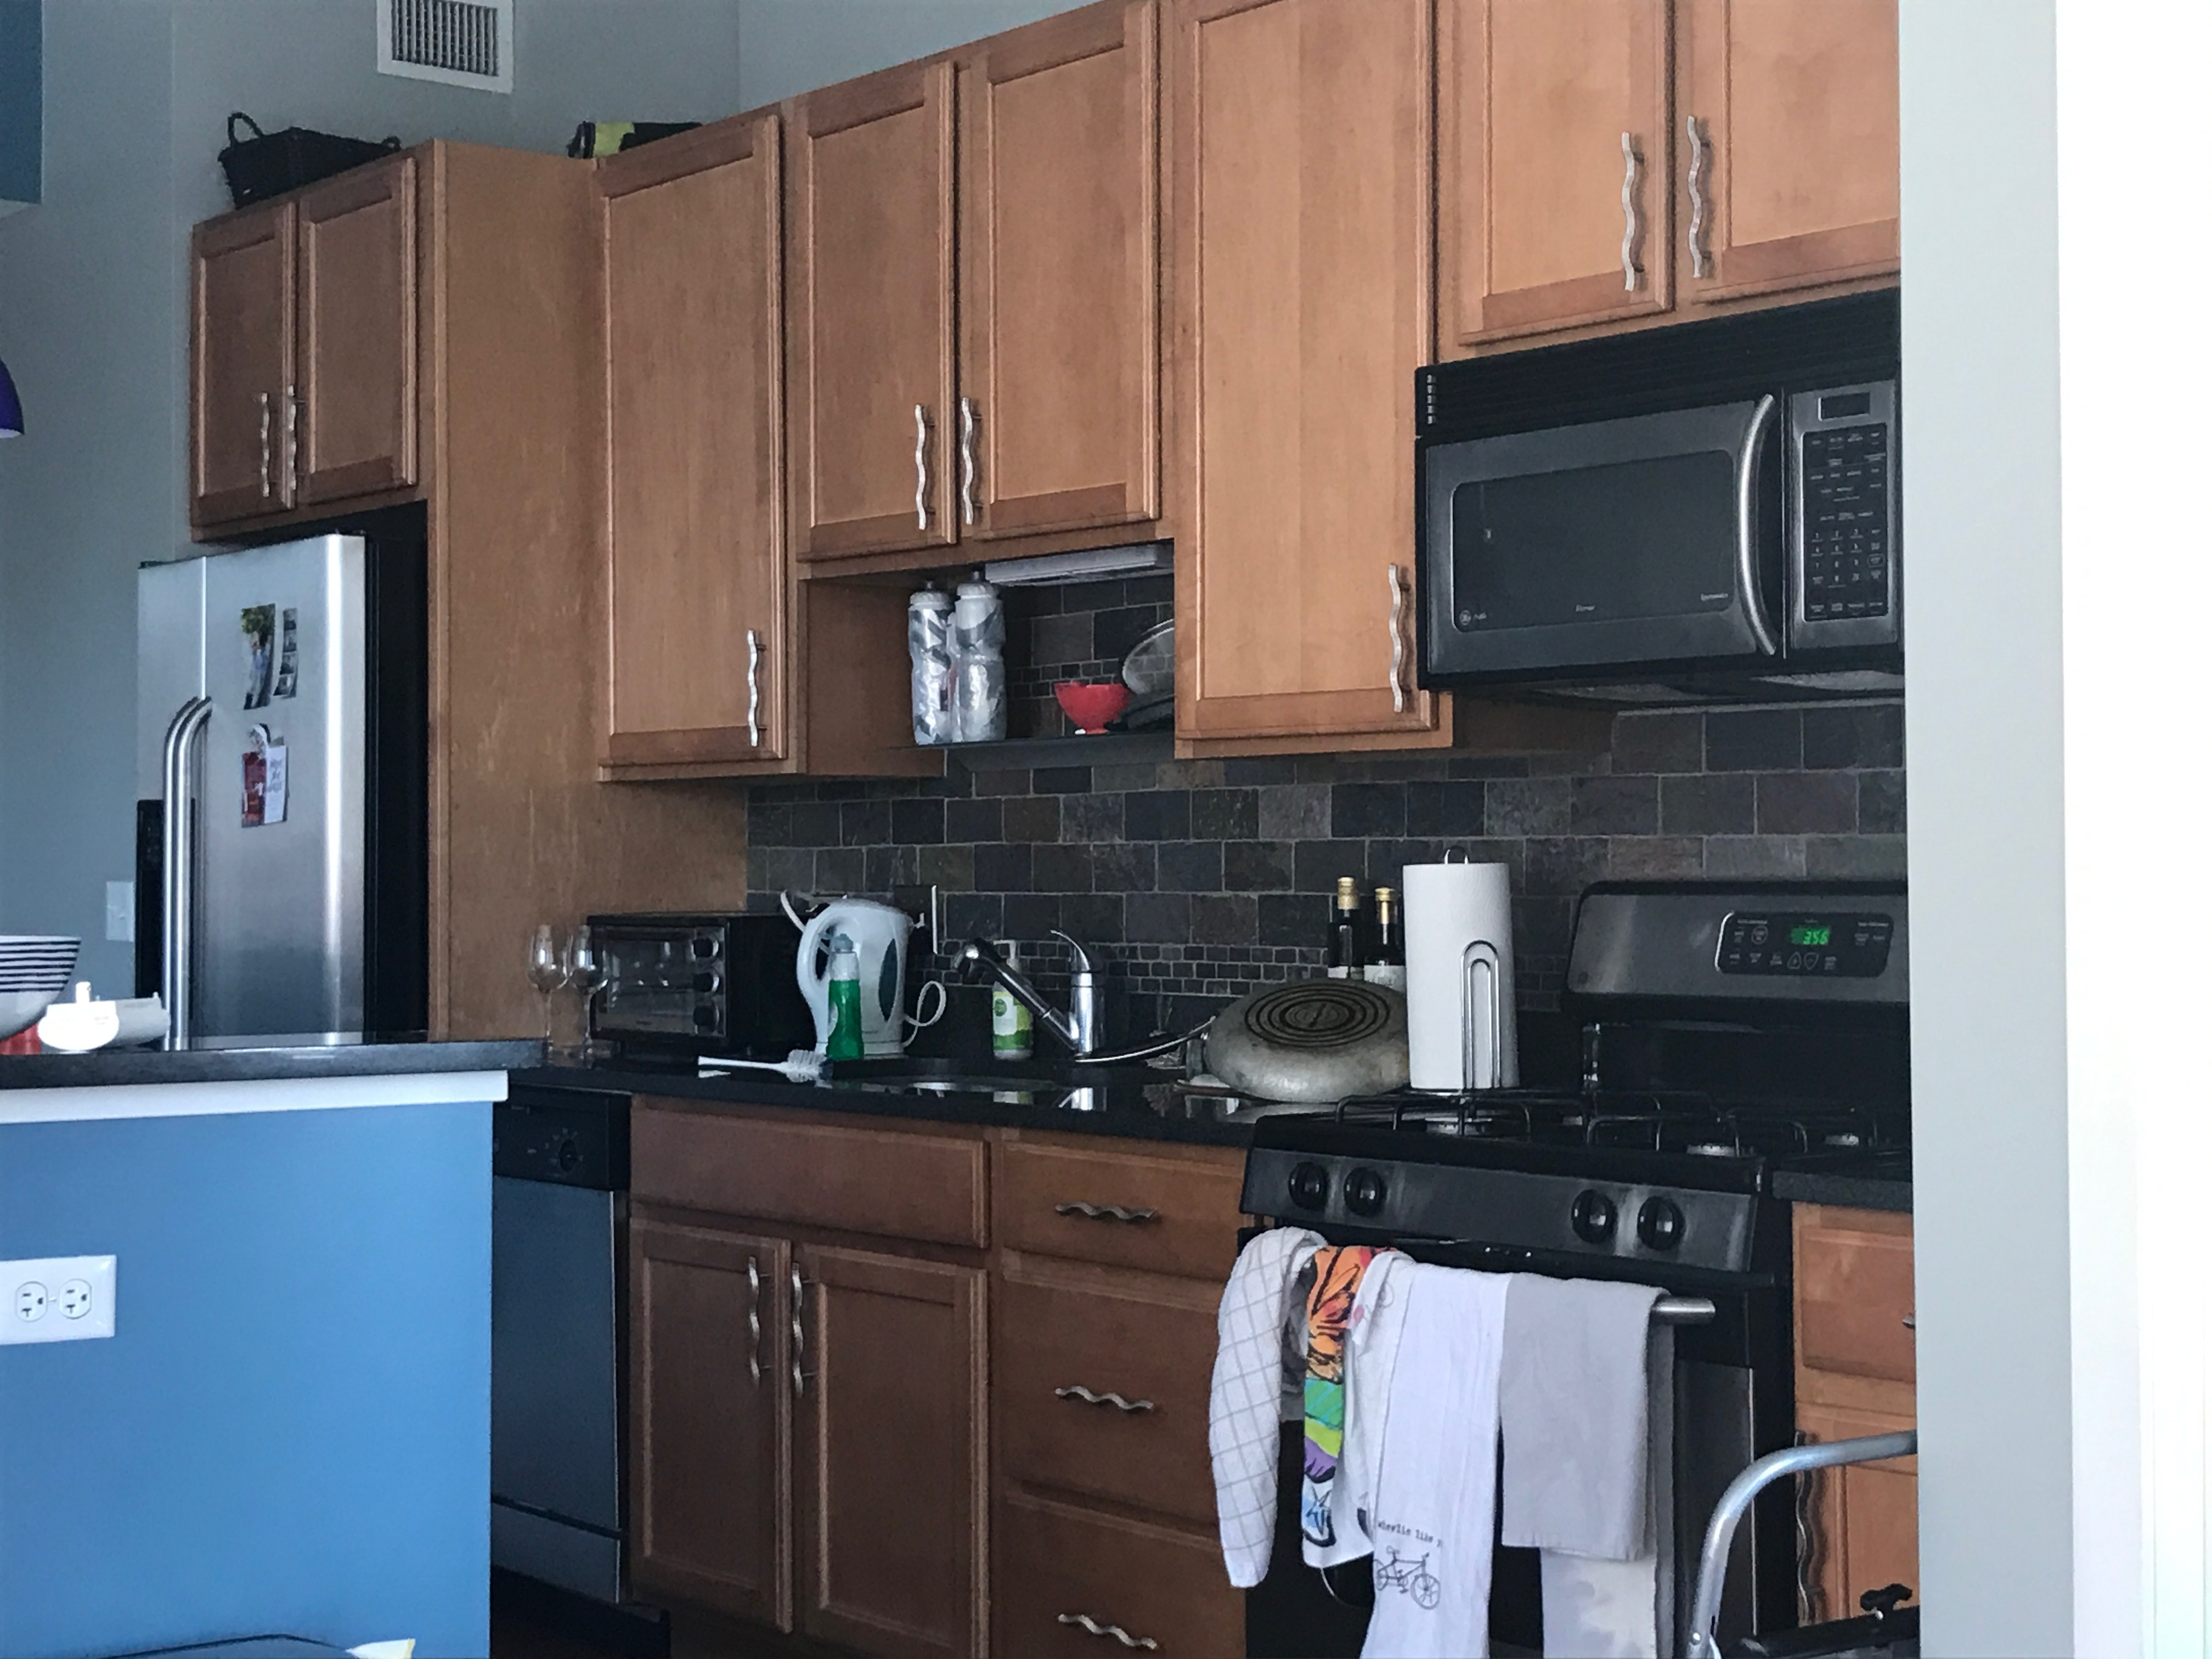 Chicago Condo Kitchen - Before Remodel